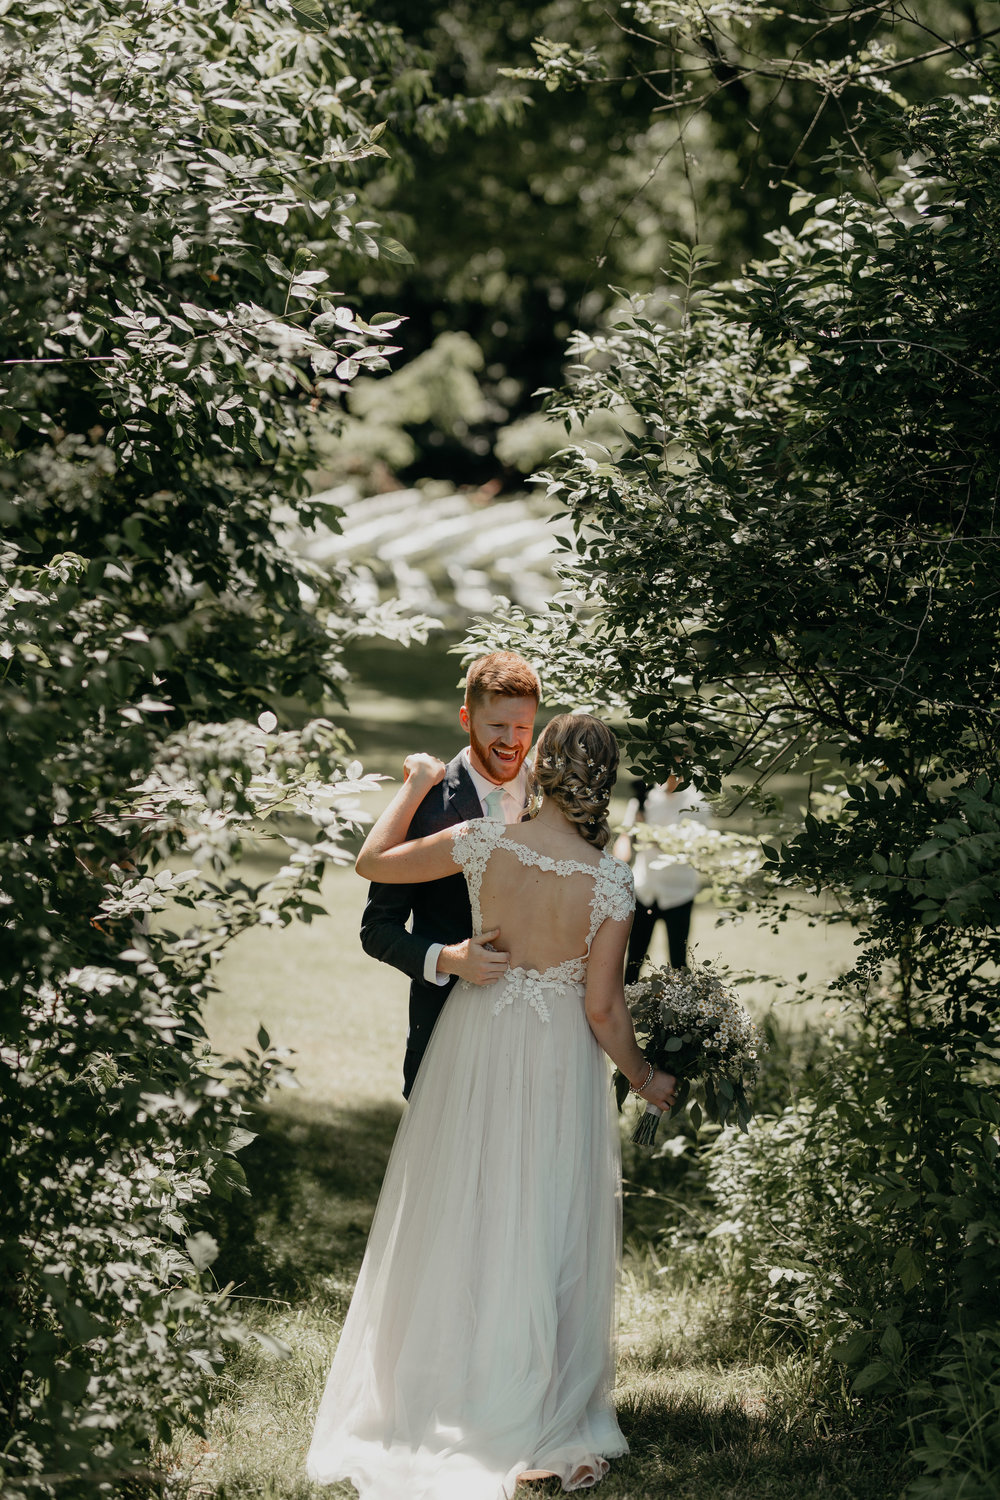 Nicole-Daacke-Photography-pennsylvania-laid-back-outside-backyard-wedding-family-summer-june-maryland-barefoot-bride-woodland-trees-sunset-couple-15.jpg